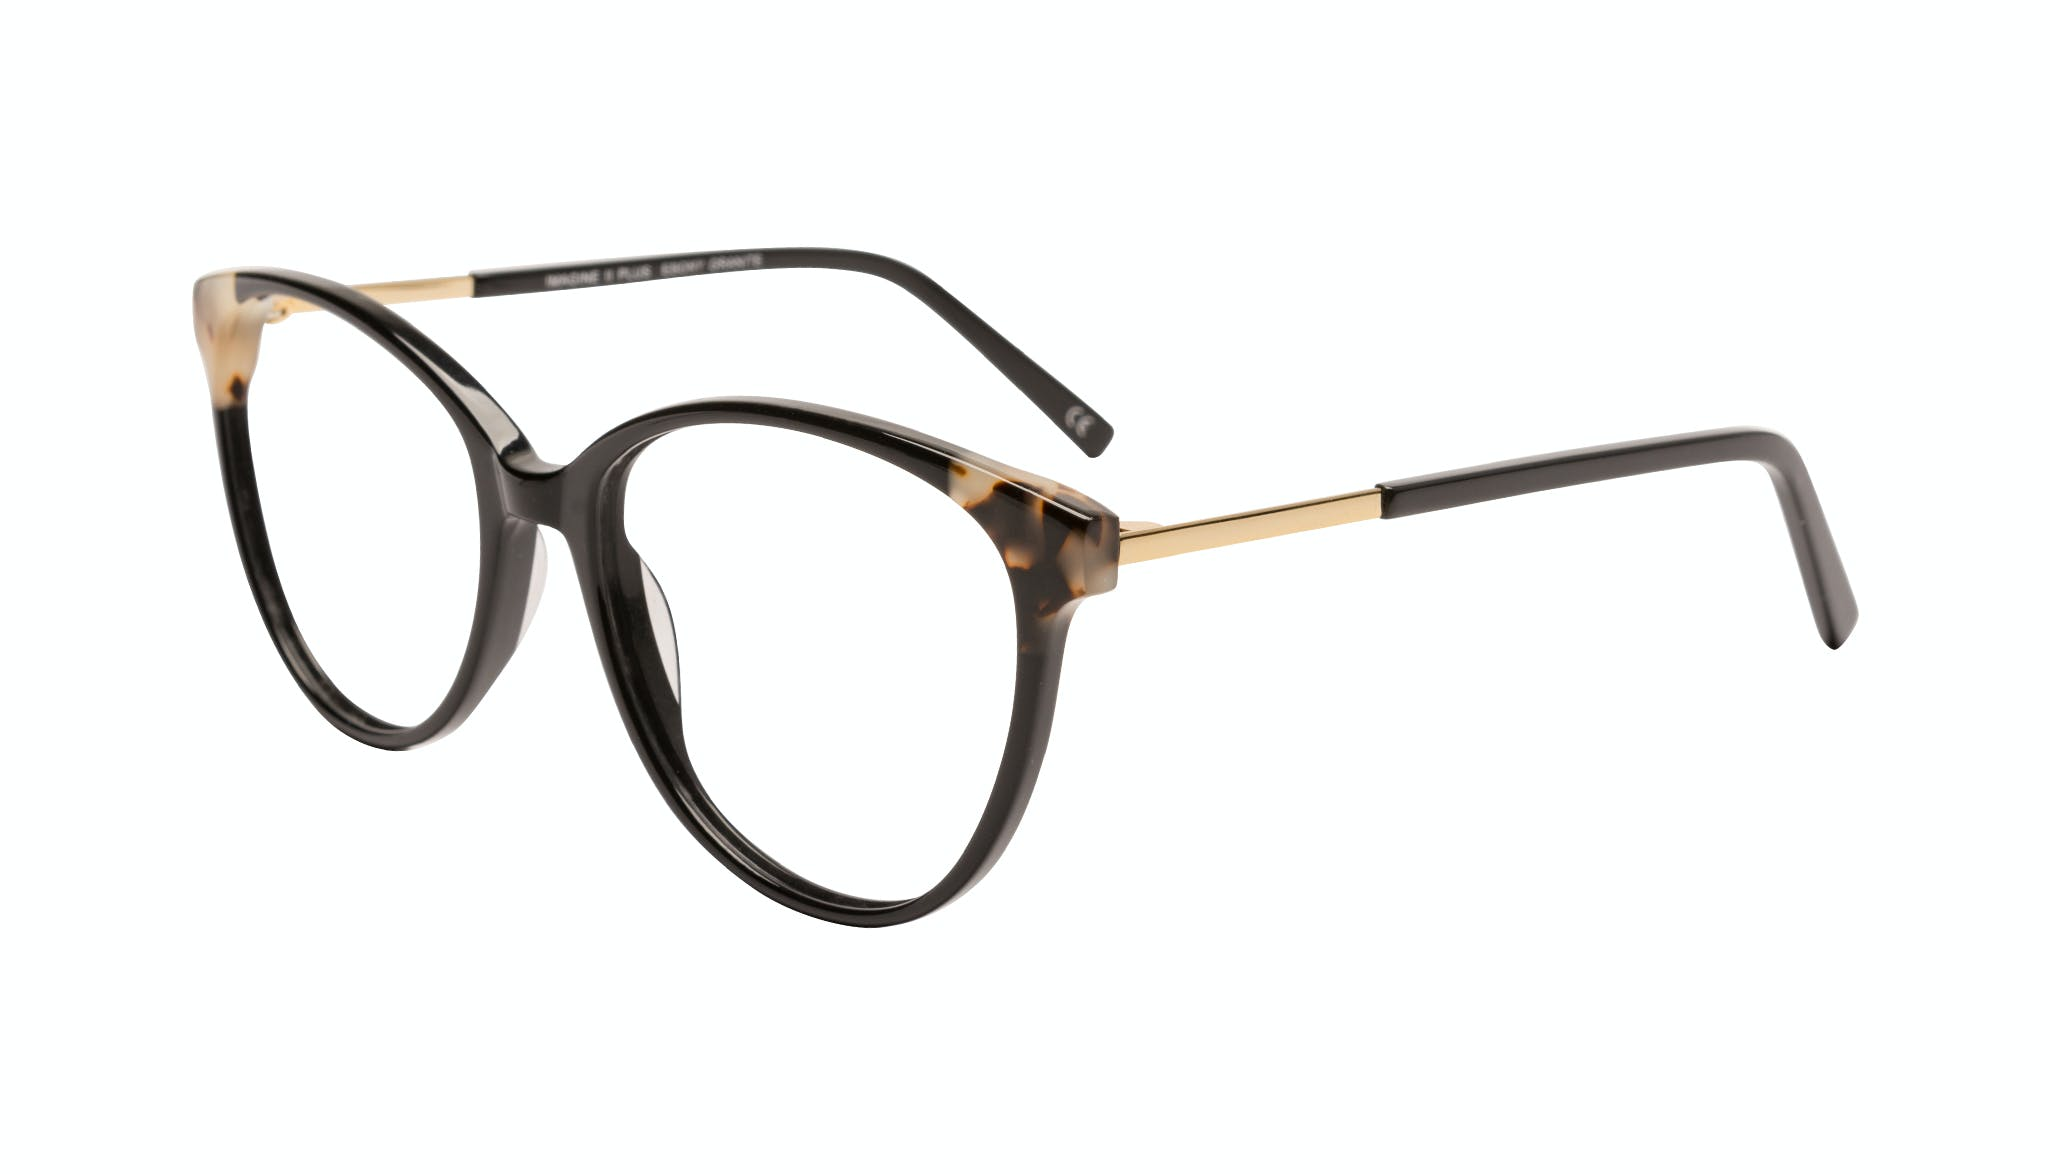 Affordable Fashion Glasses Round Eyeglasses Women Imagine II Plus Ebony Granite Tilt